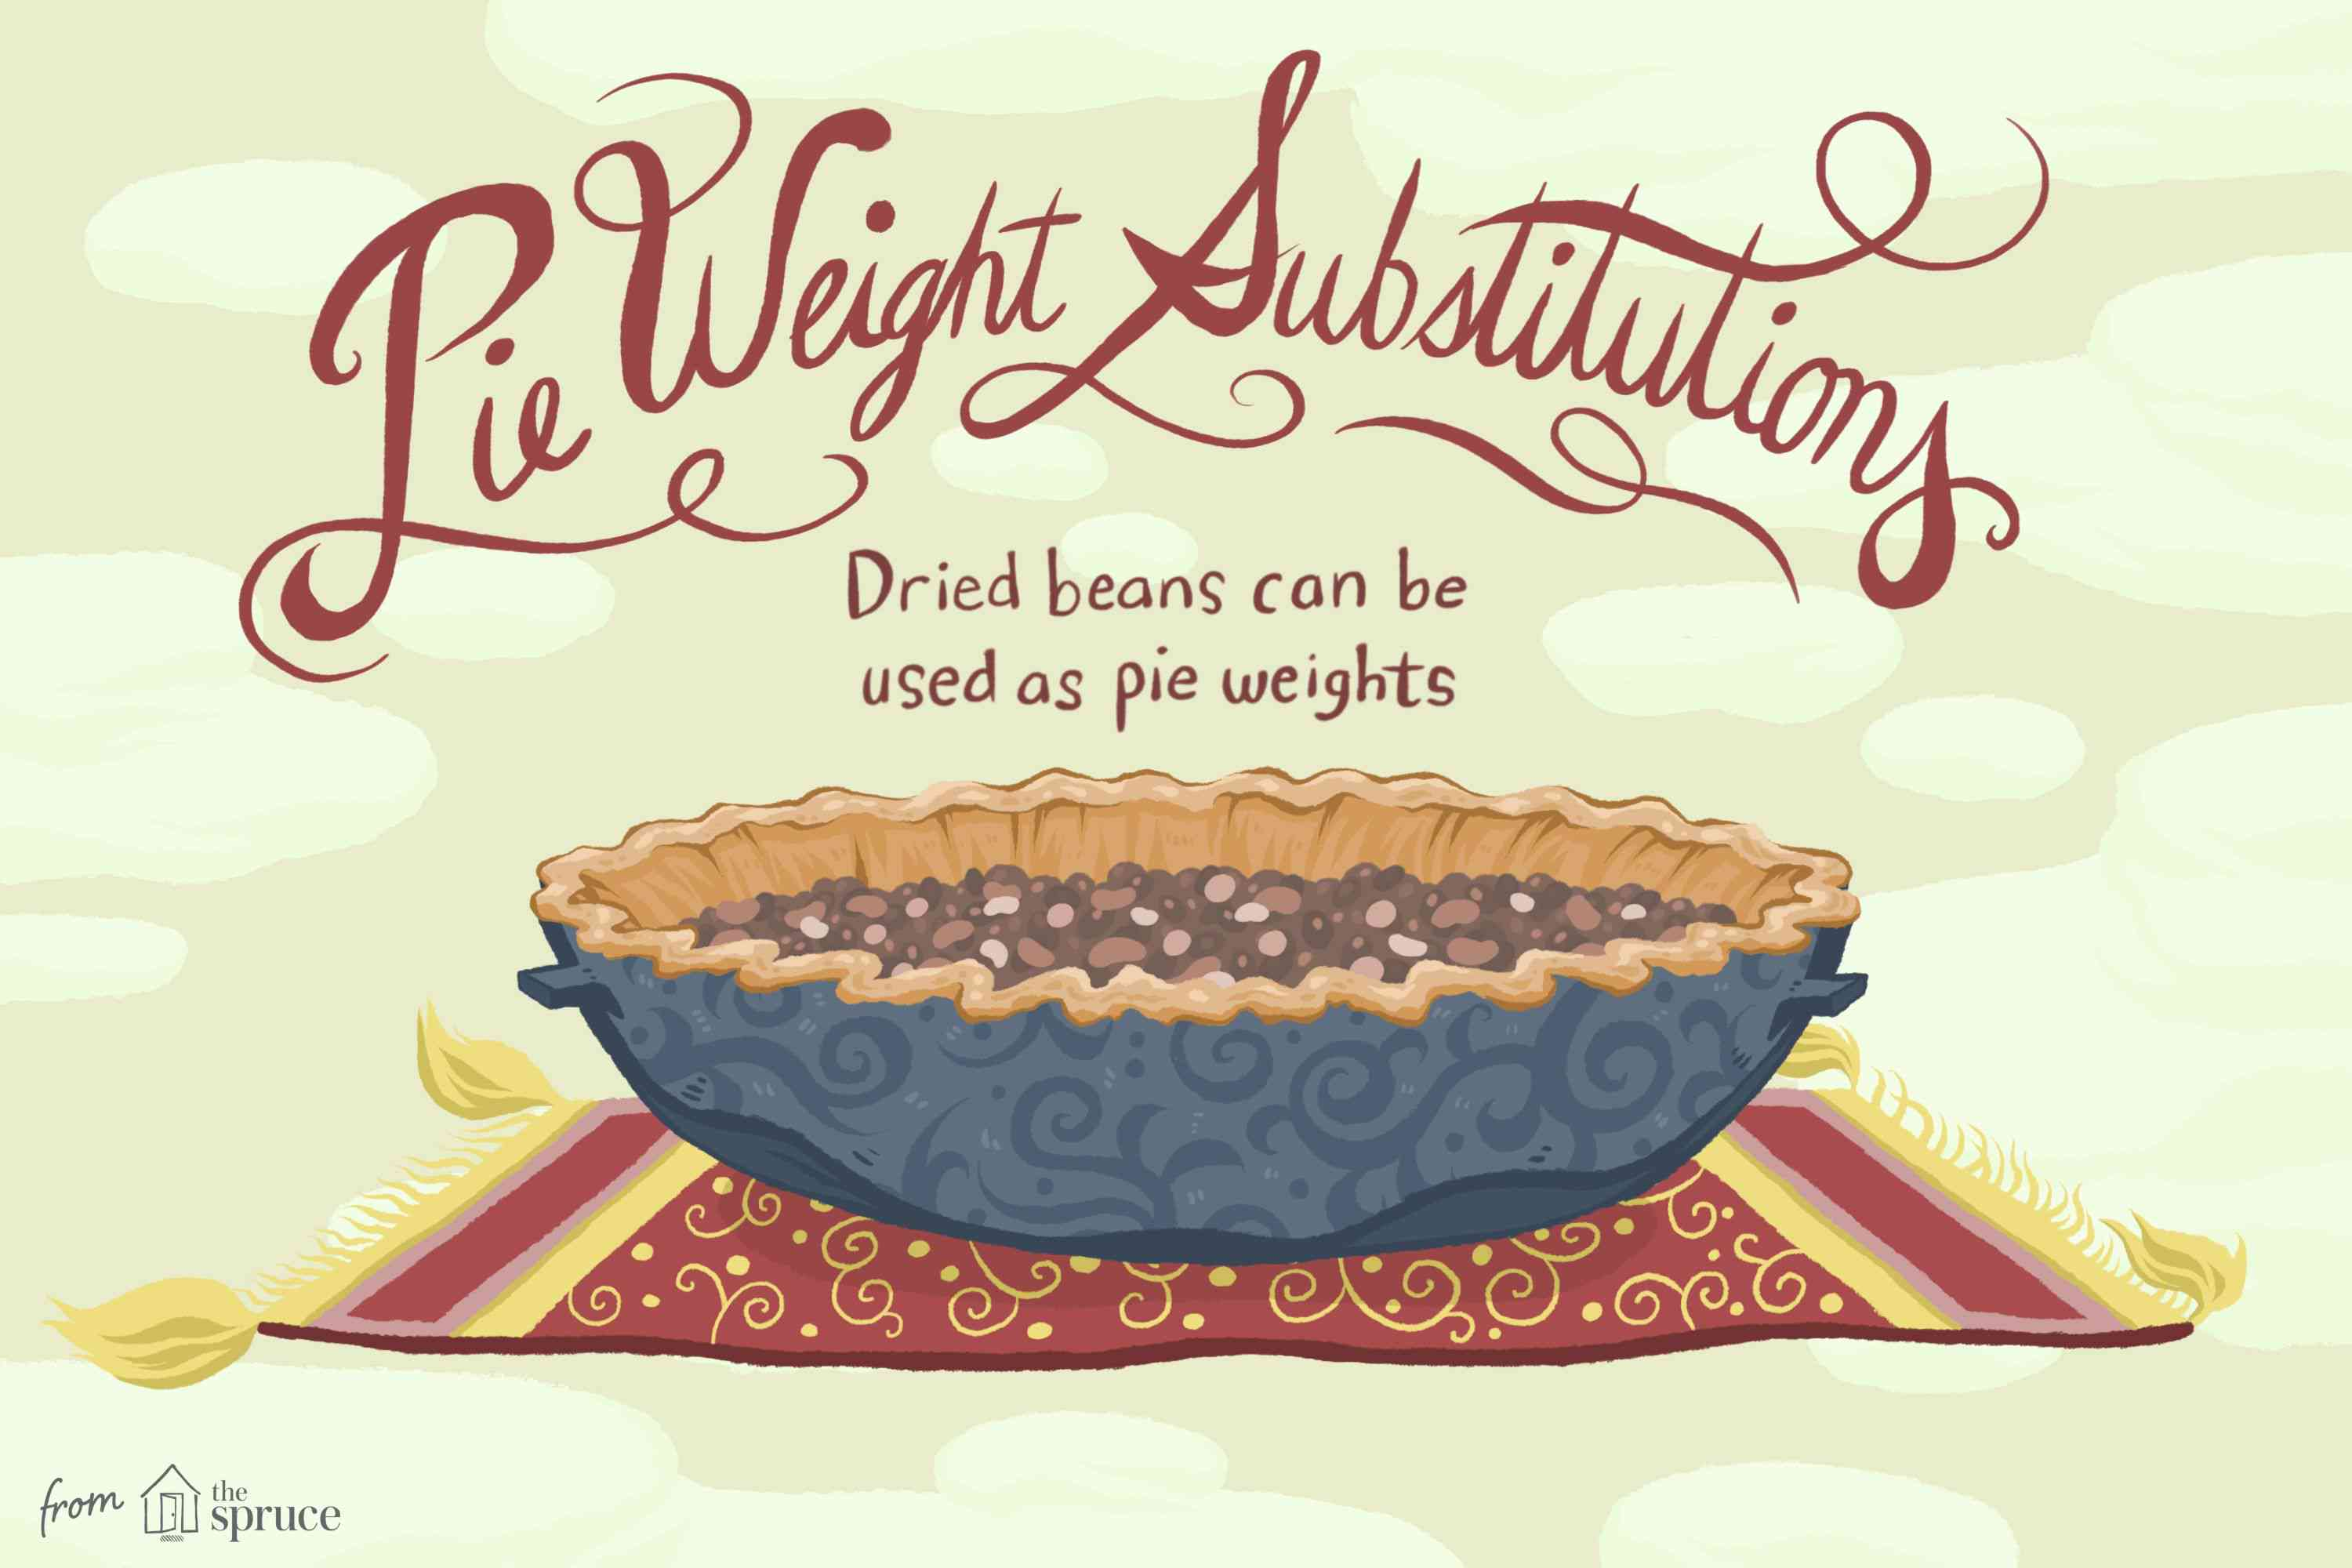 Pie Weight Subs